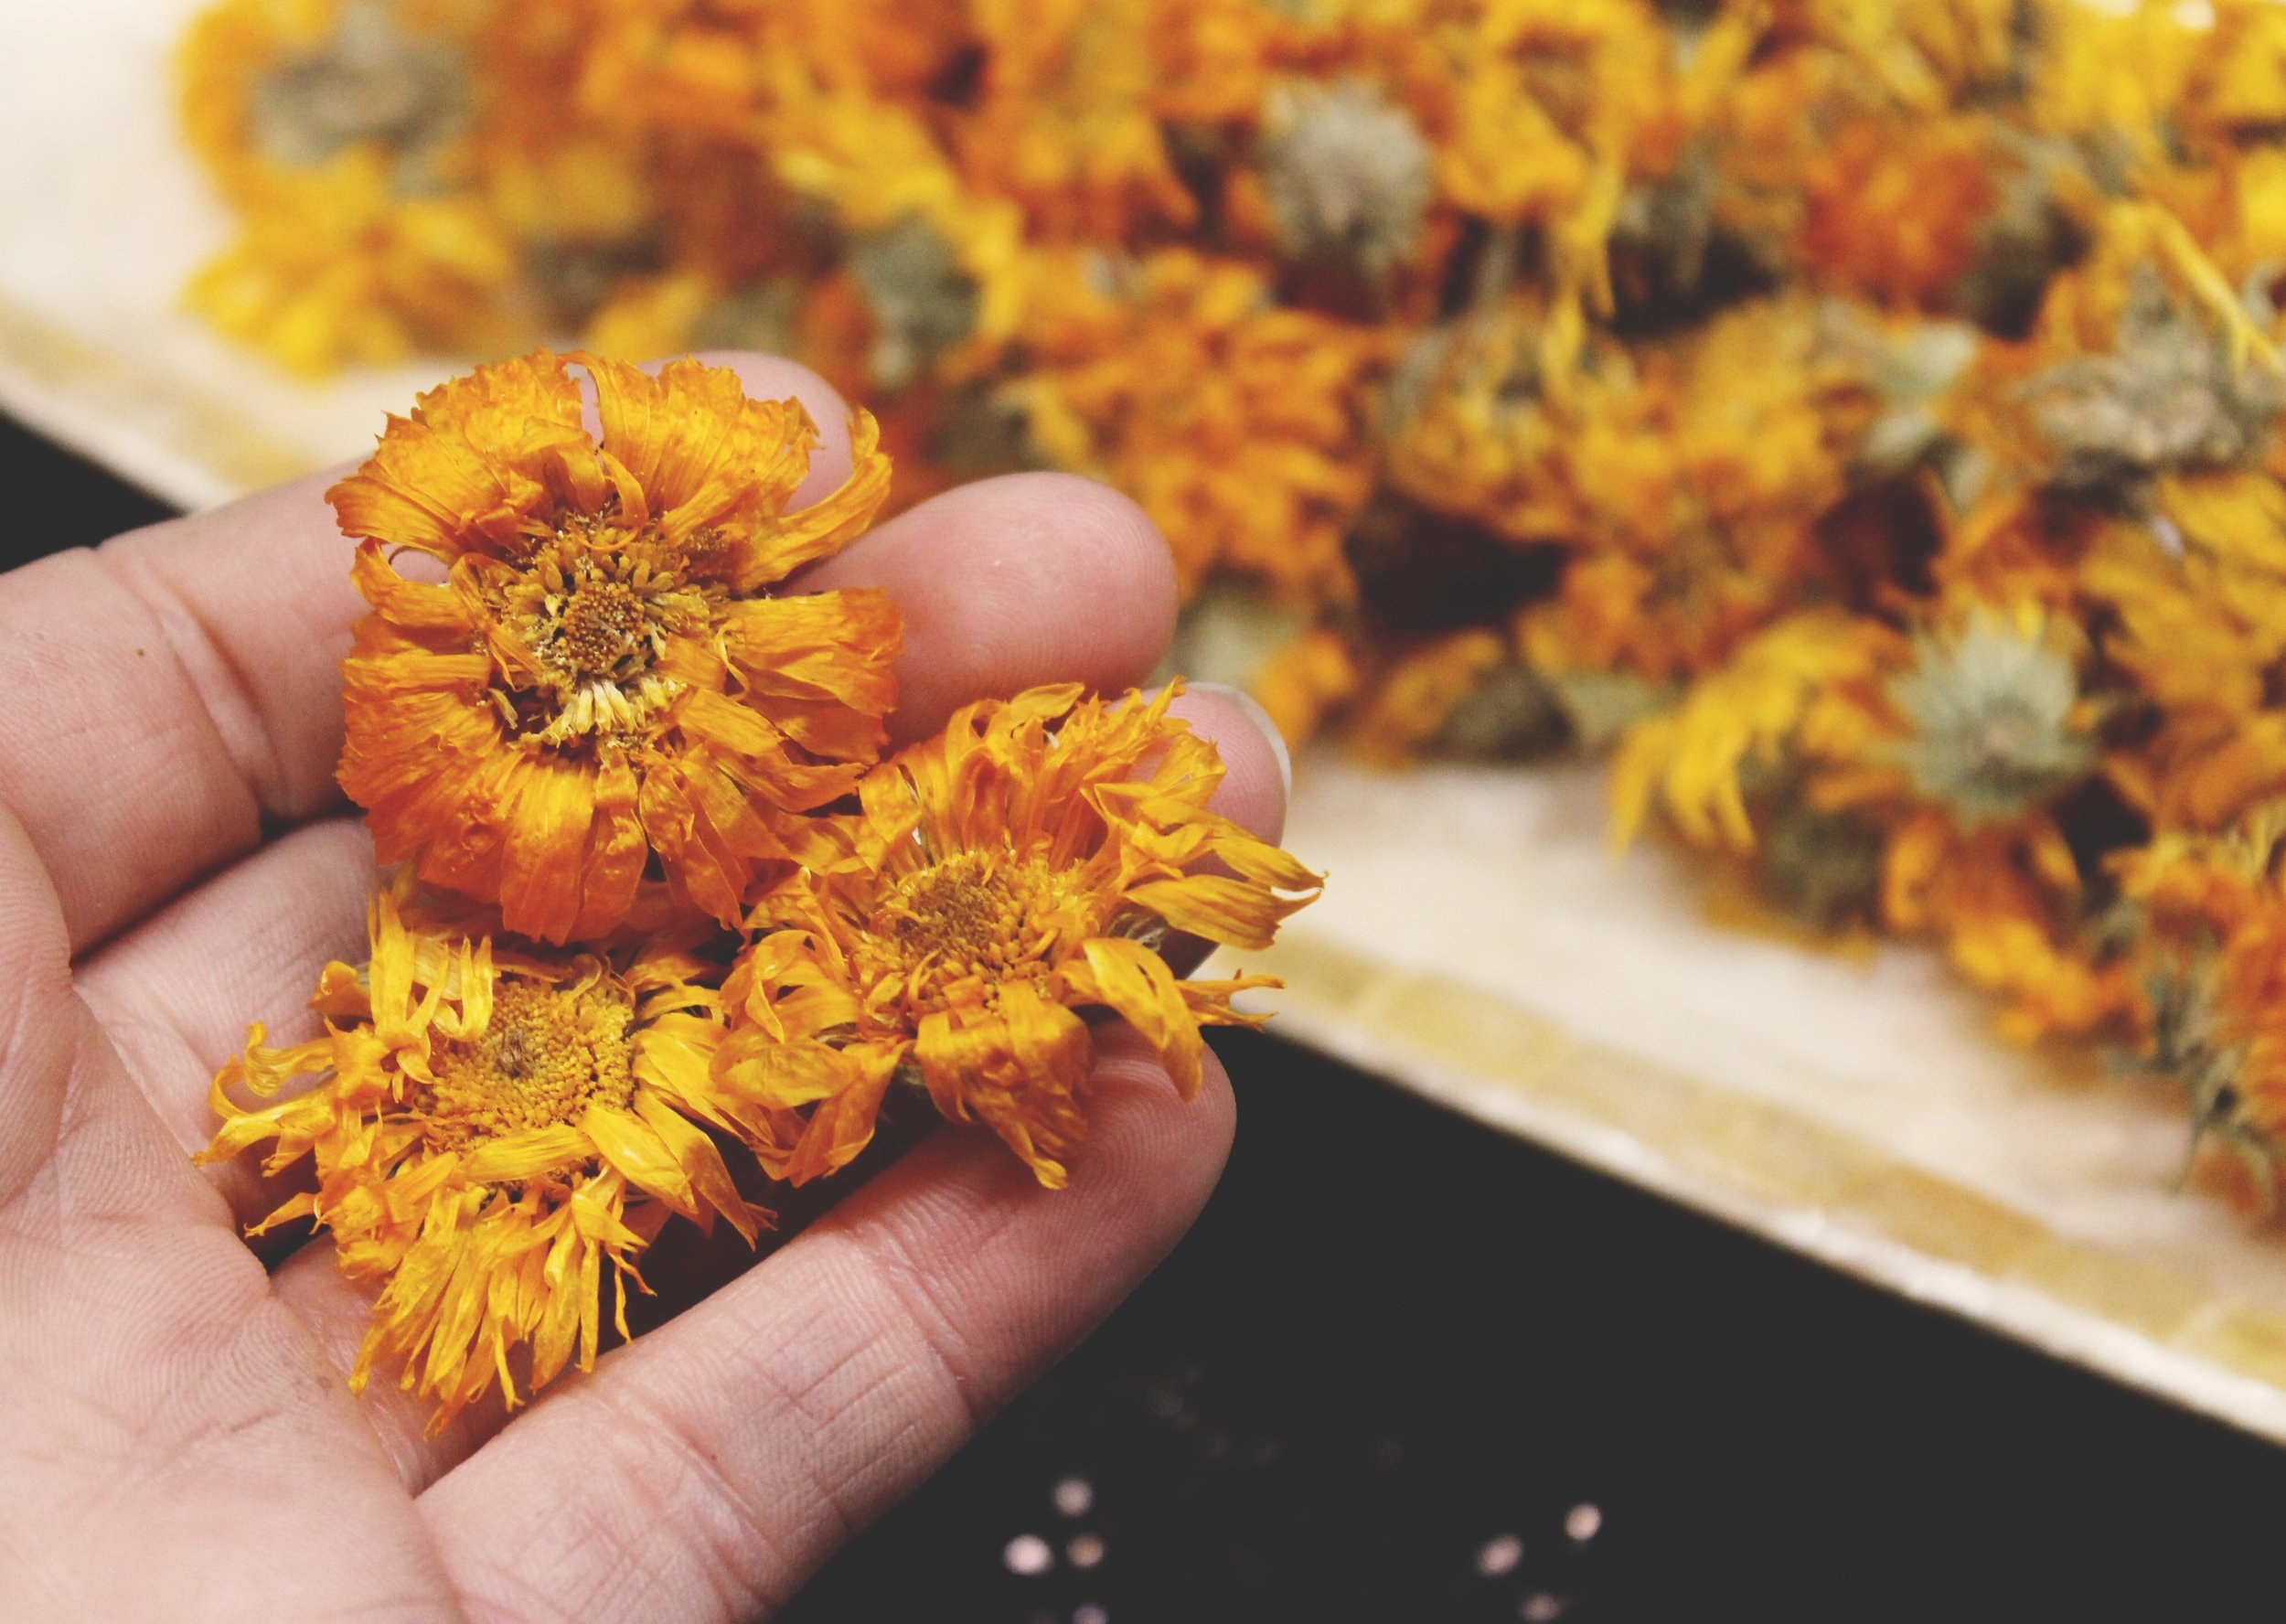 Gather 3-6 cups of full dried calendula blossoms